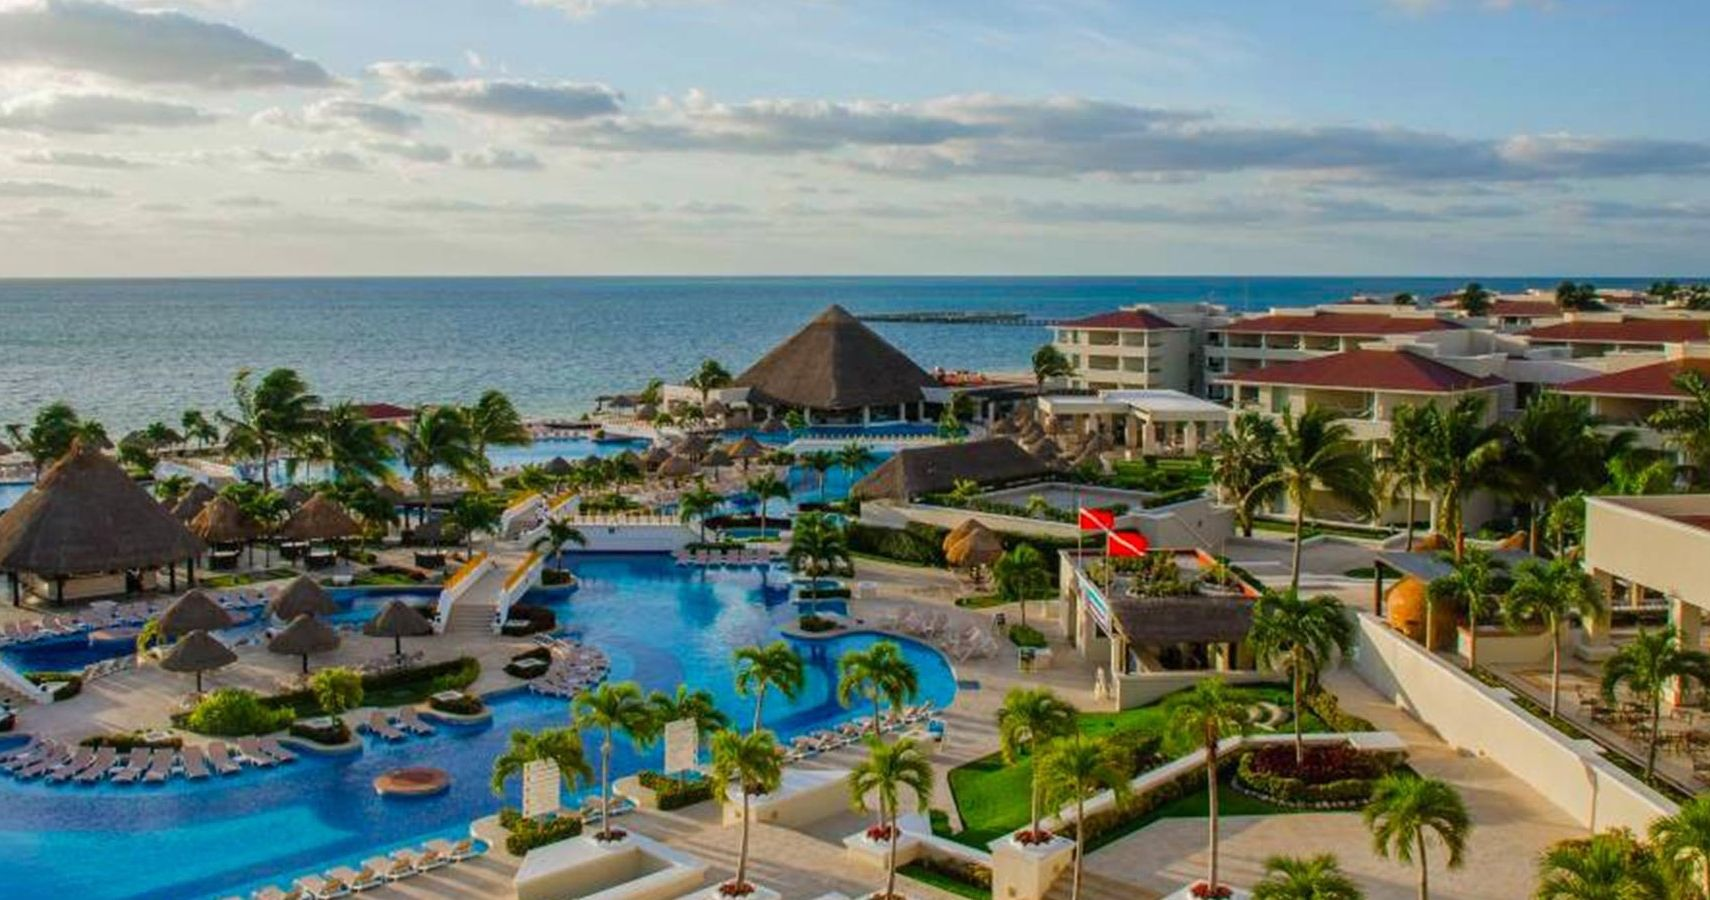 10 Best FamilyFriendly AllInclusive Resorts In Mexico